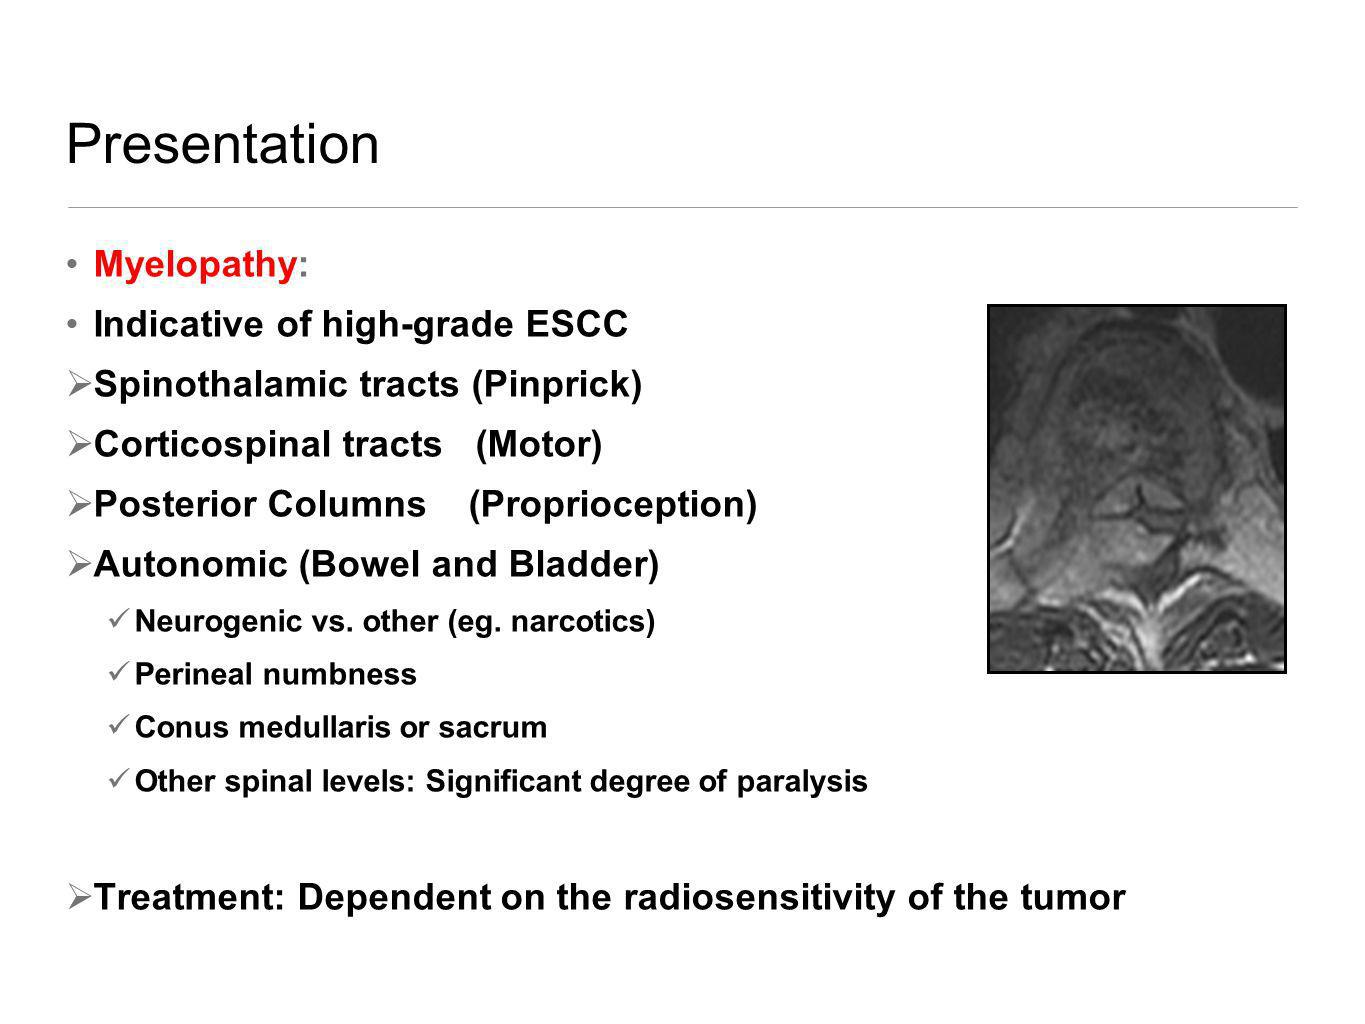 Presentation Myelopathy: Indicative of high-grade ESCC Spinothalamic tracts (Pinprick) Corticospinal tracts (Motor) Posterior Columns (Proprioception)